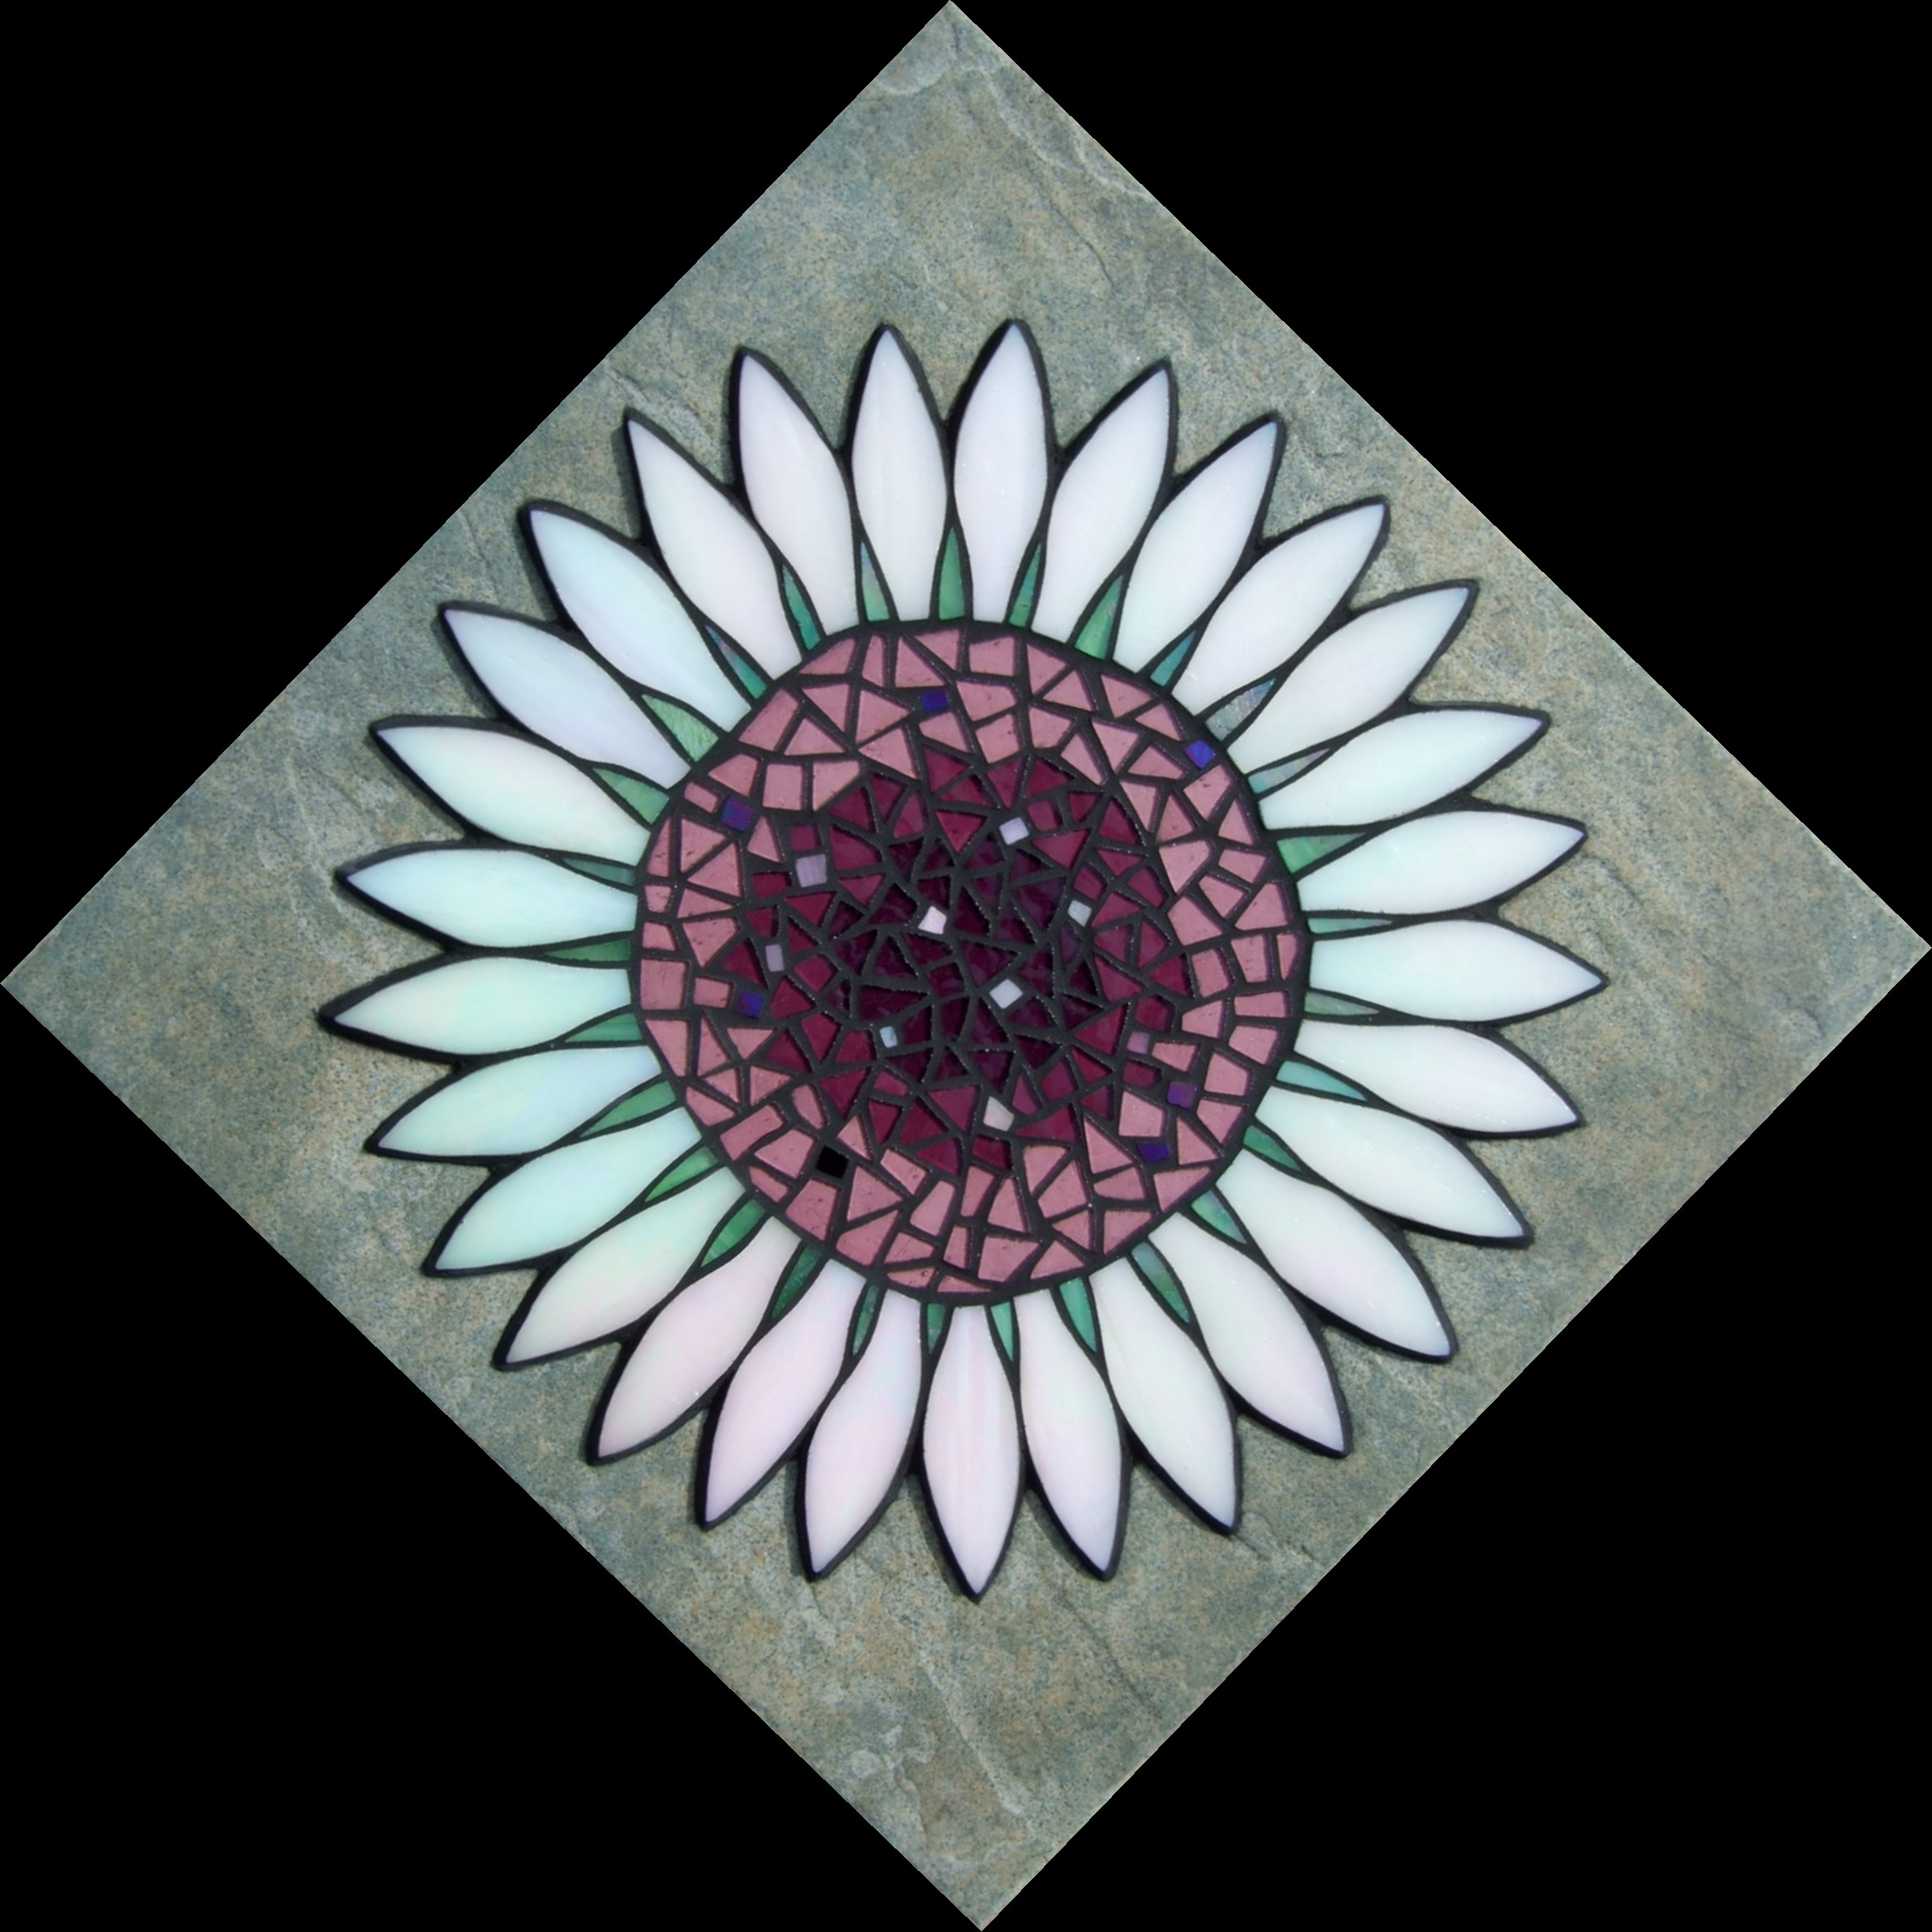 """Moonflower"" 30cm x 30cm.  Iridescent & stained glass on ceramic tile.  Hangs as diamond. (Fixings can be altered to hang square)"